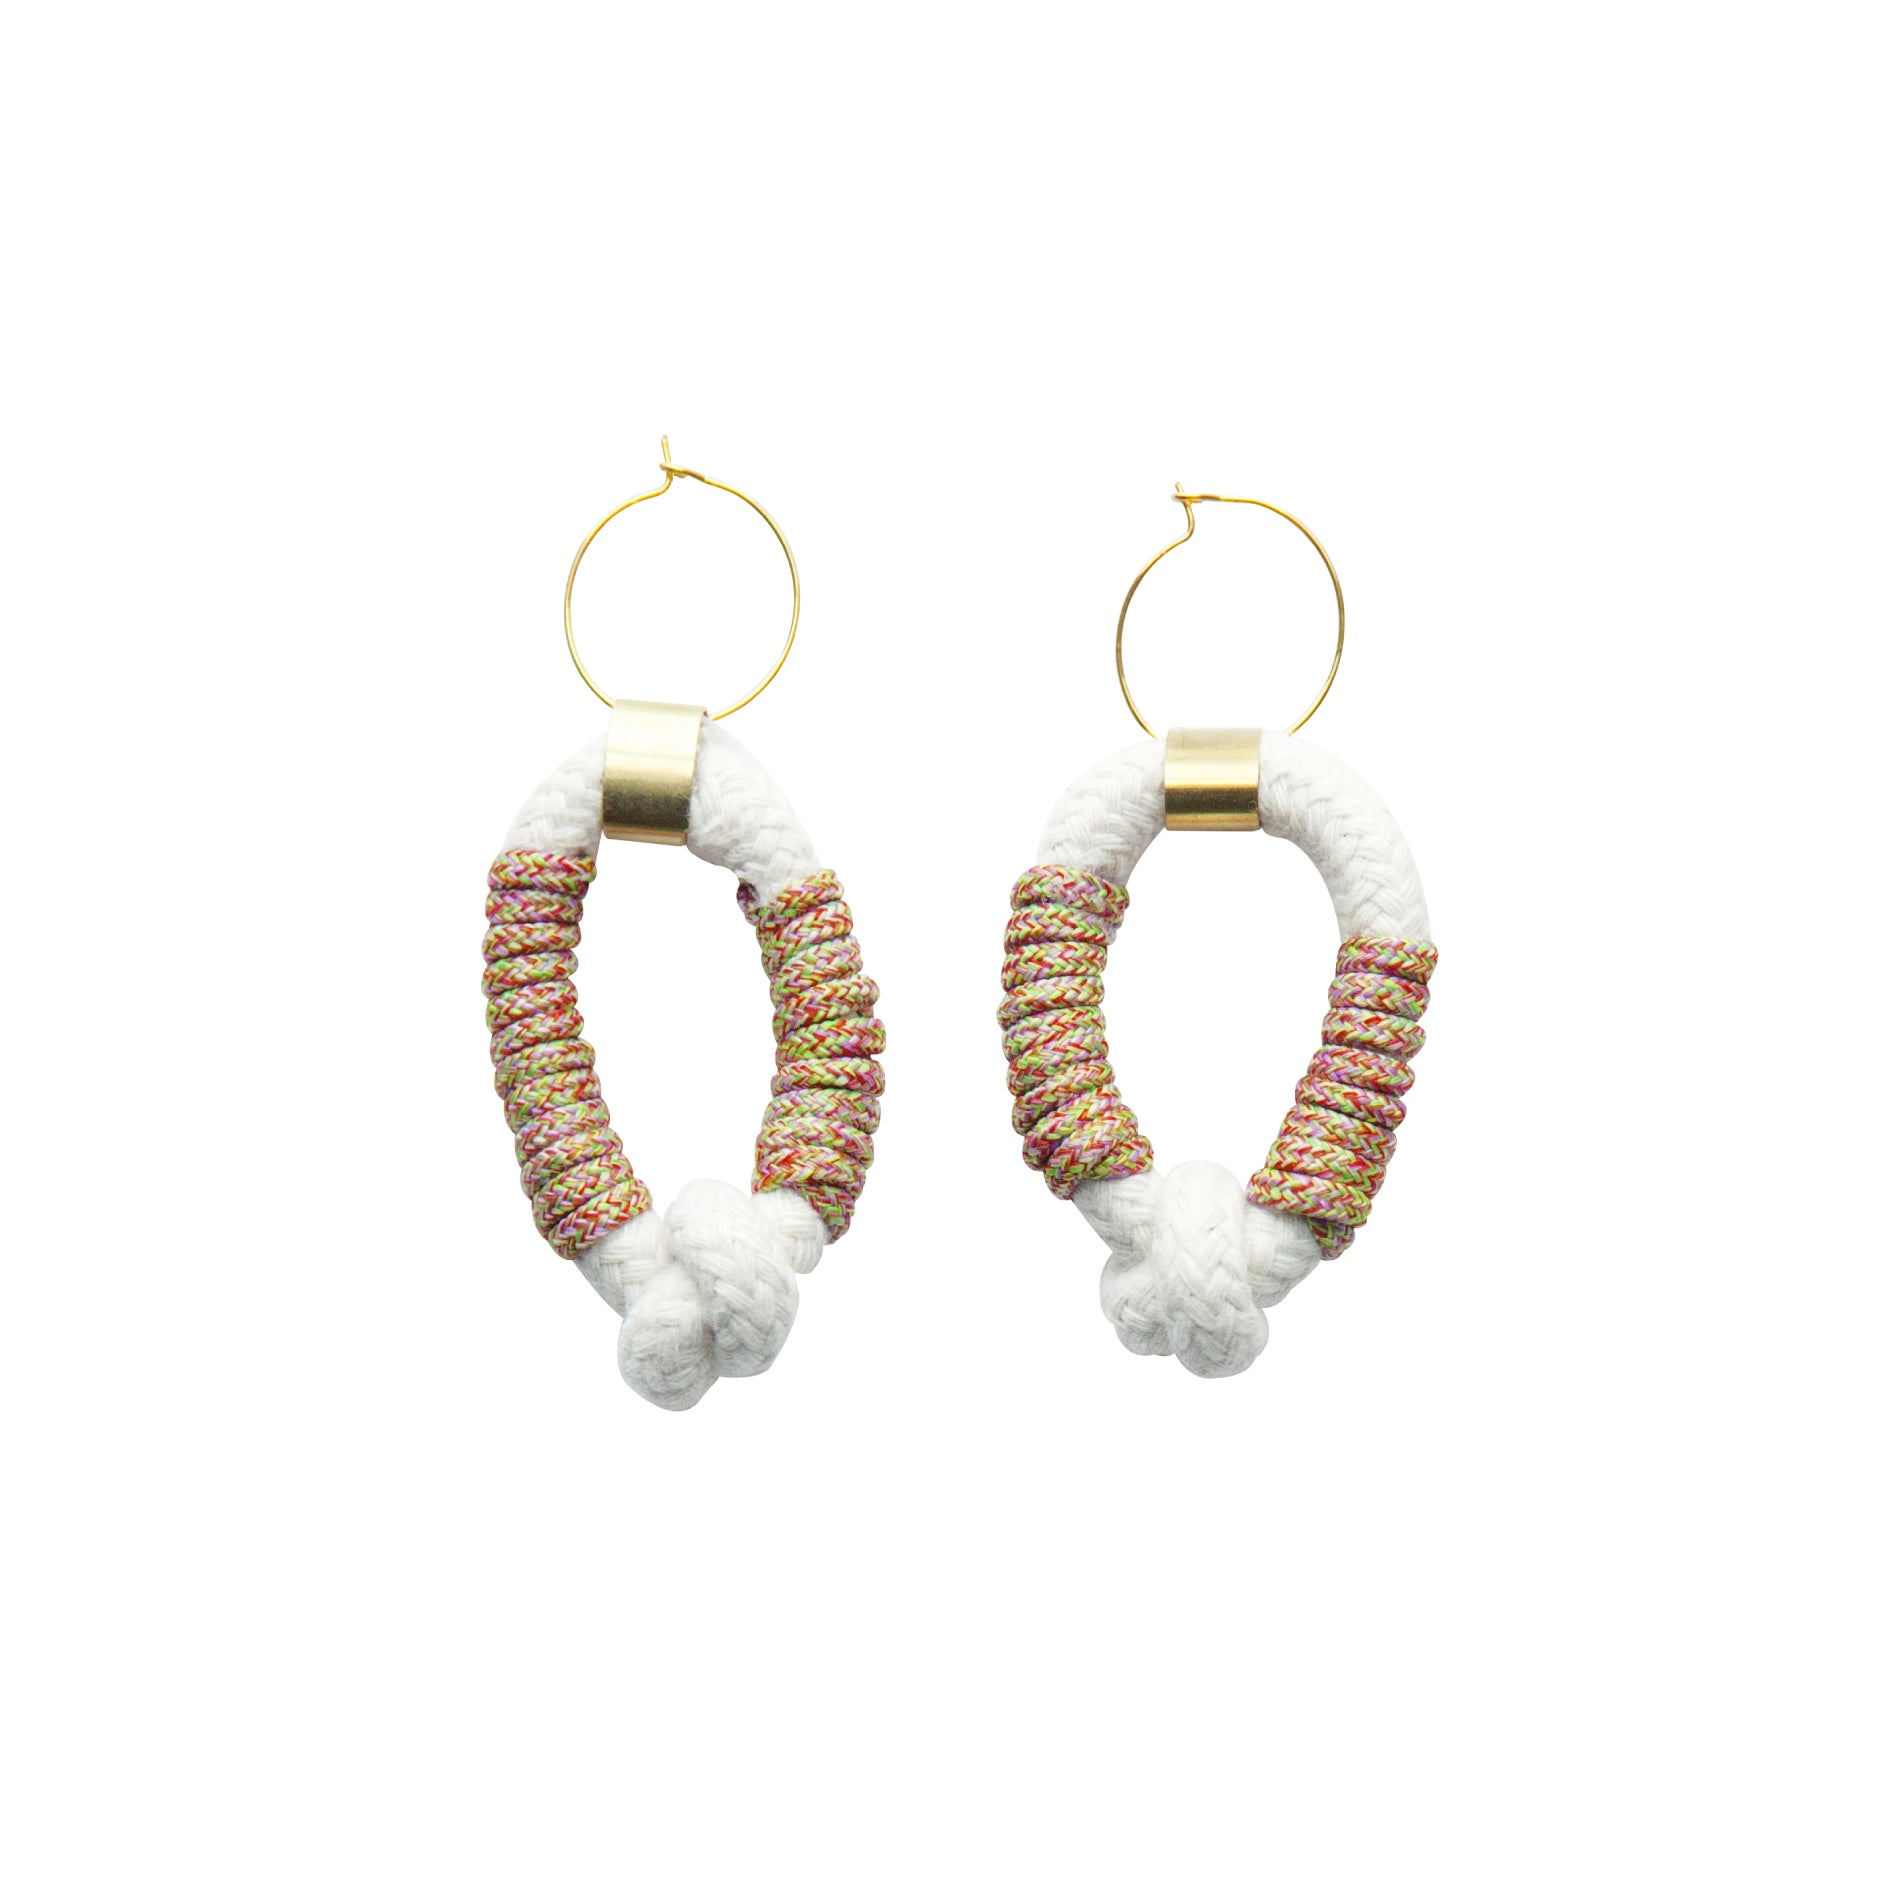 Image of Candy loop a loop earrings